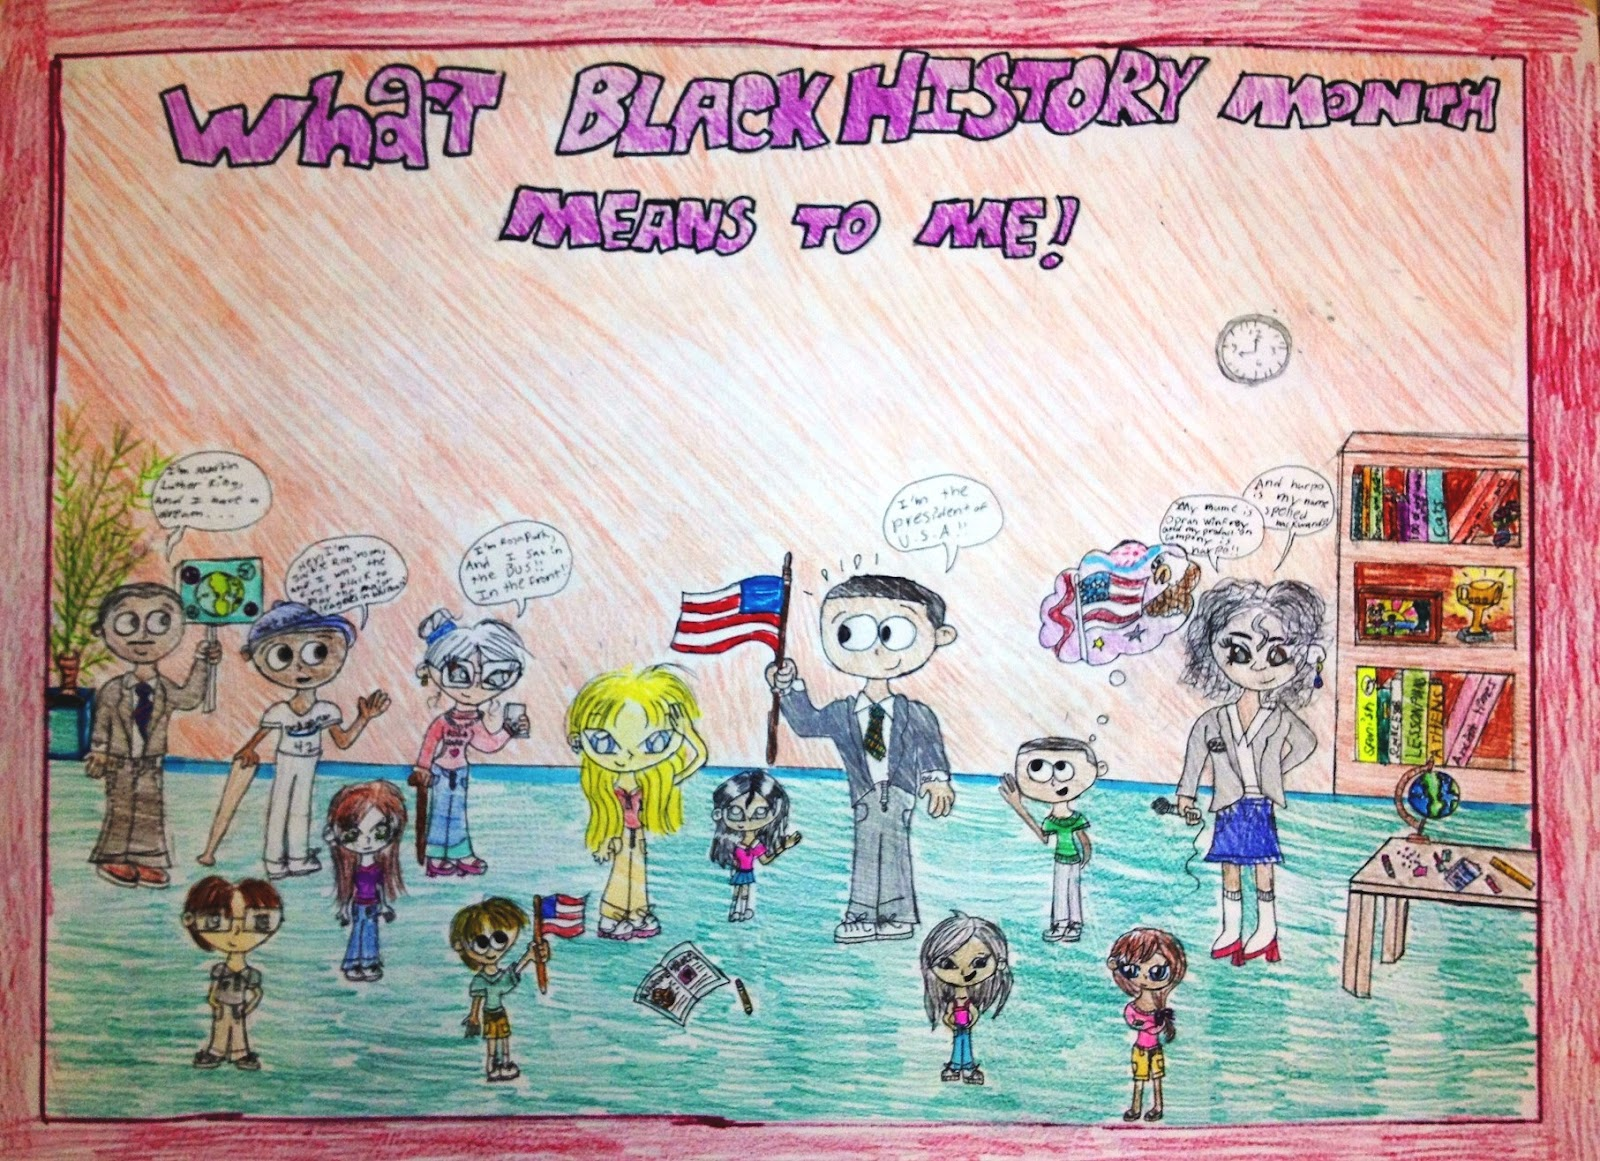 This Student Imagines Herself The Blonde Girl Meeting All Famous African Americans She Has Learned About In Social Studies Class